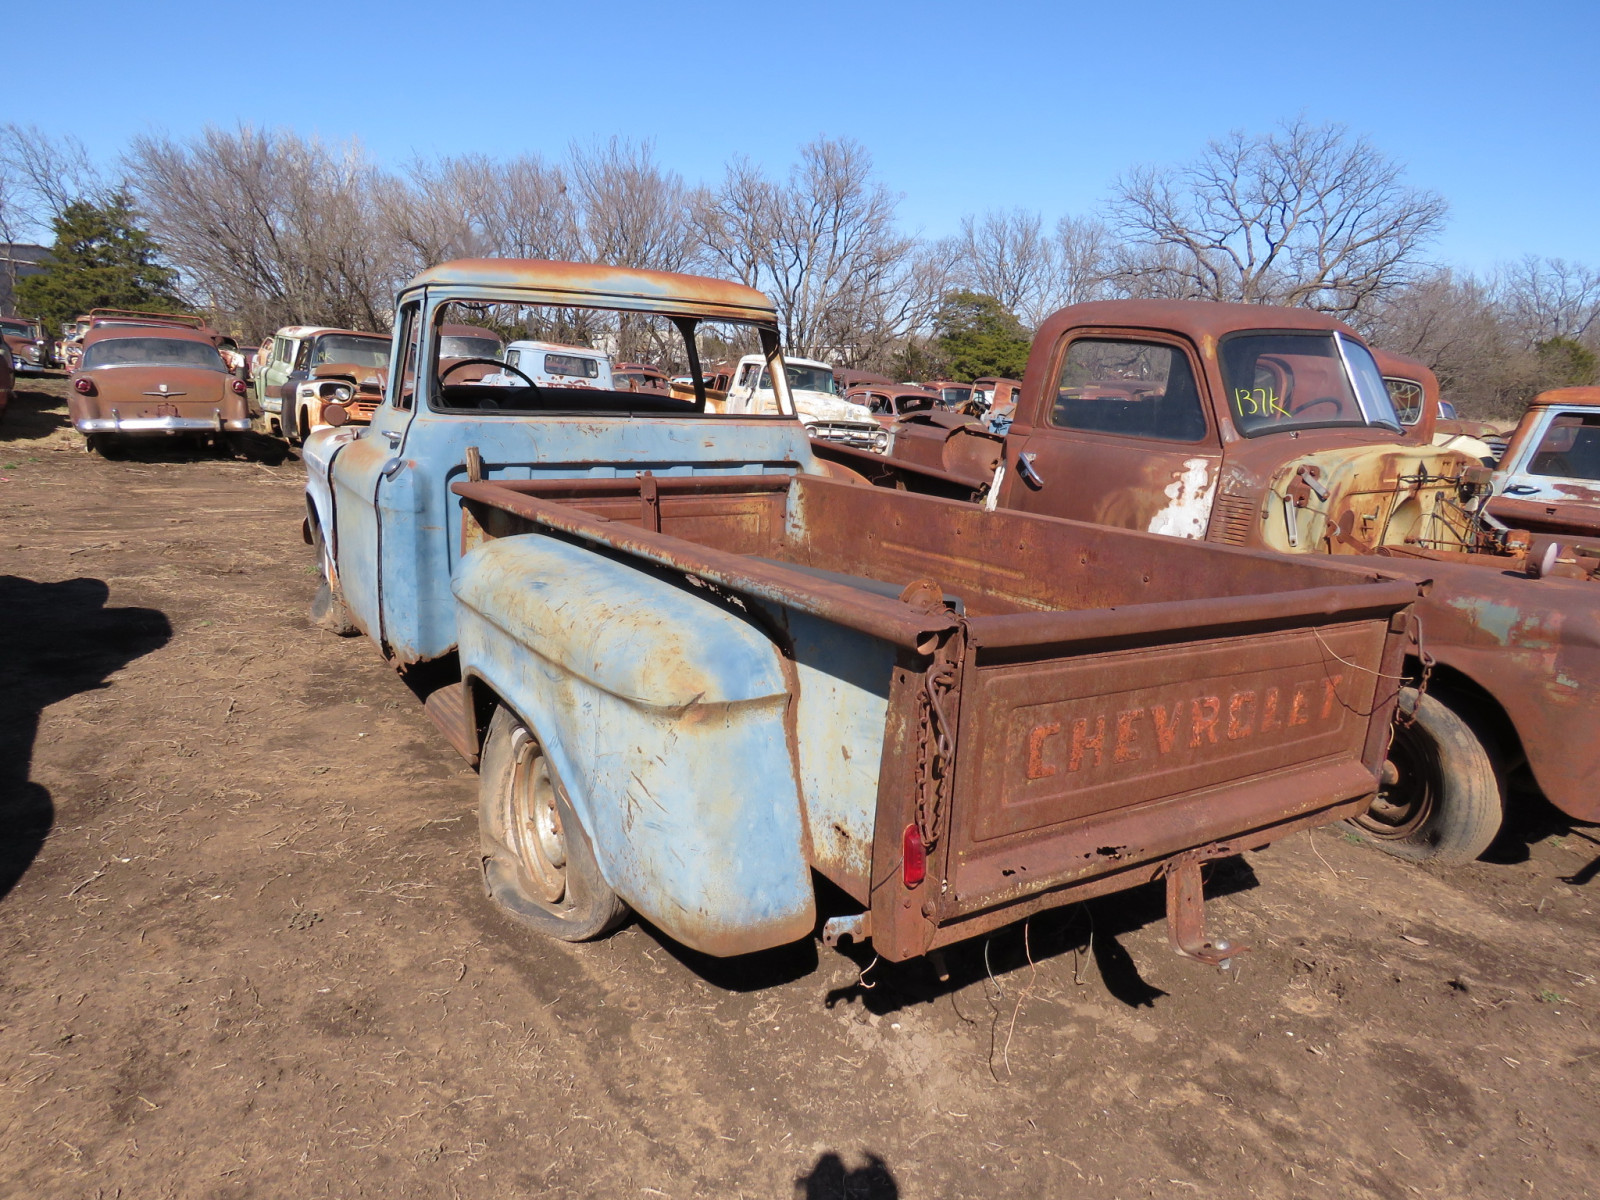 1955/6 Chevrolet Pickup for Parts - Image 3